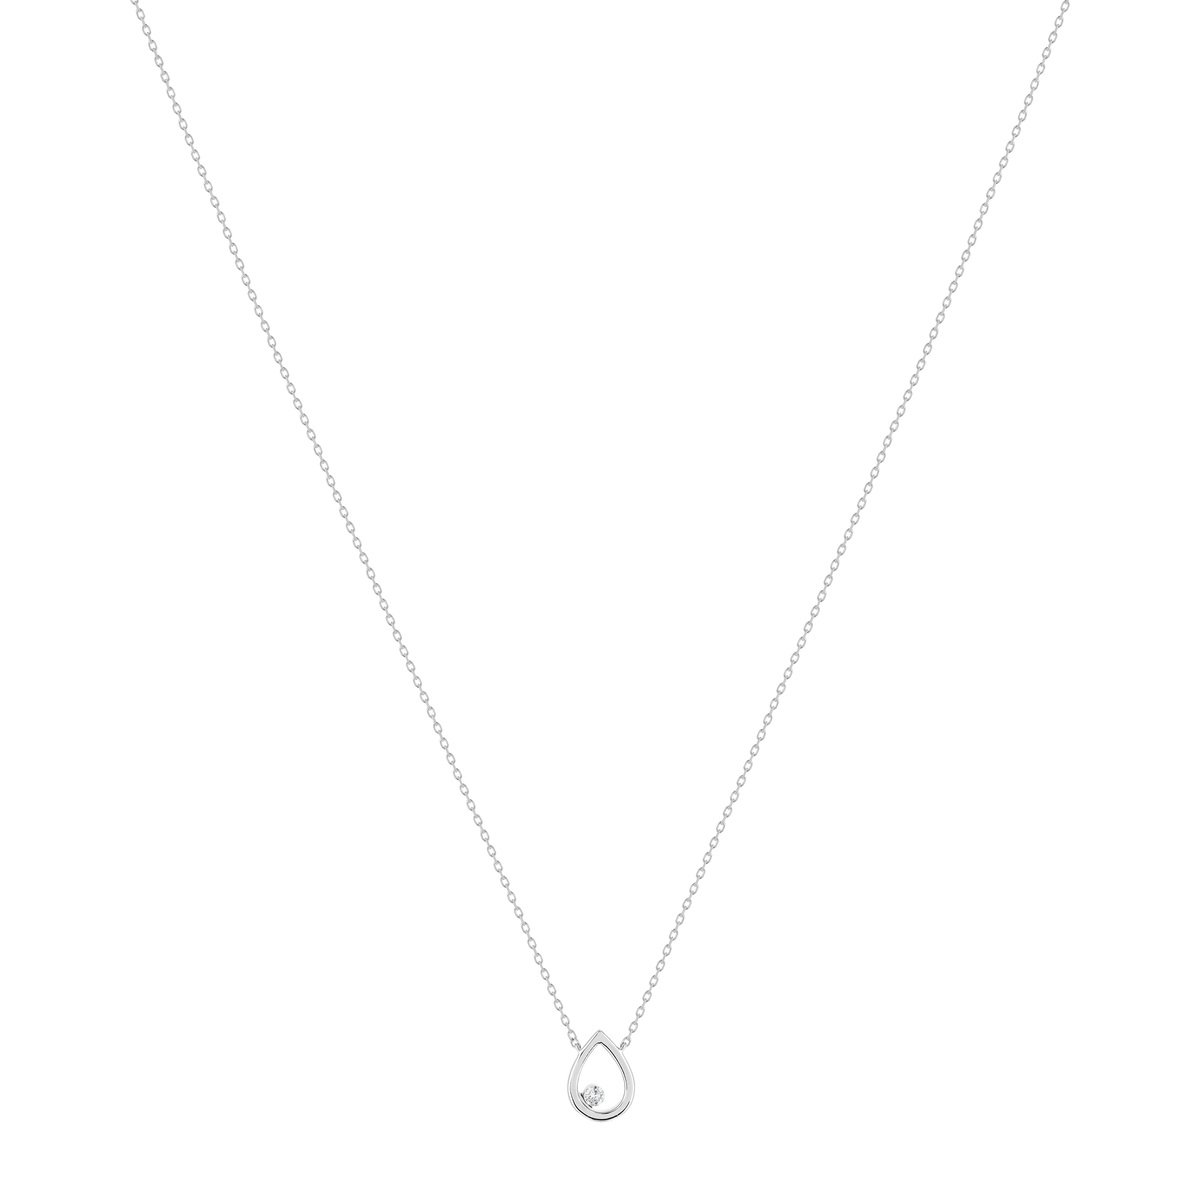 Collier or blanc 375 diamant 42 cm - vue V1